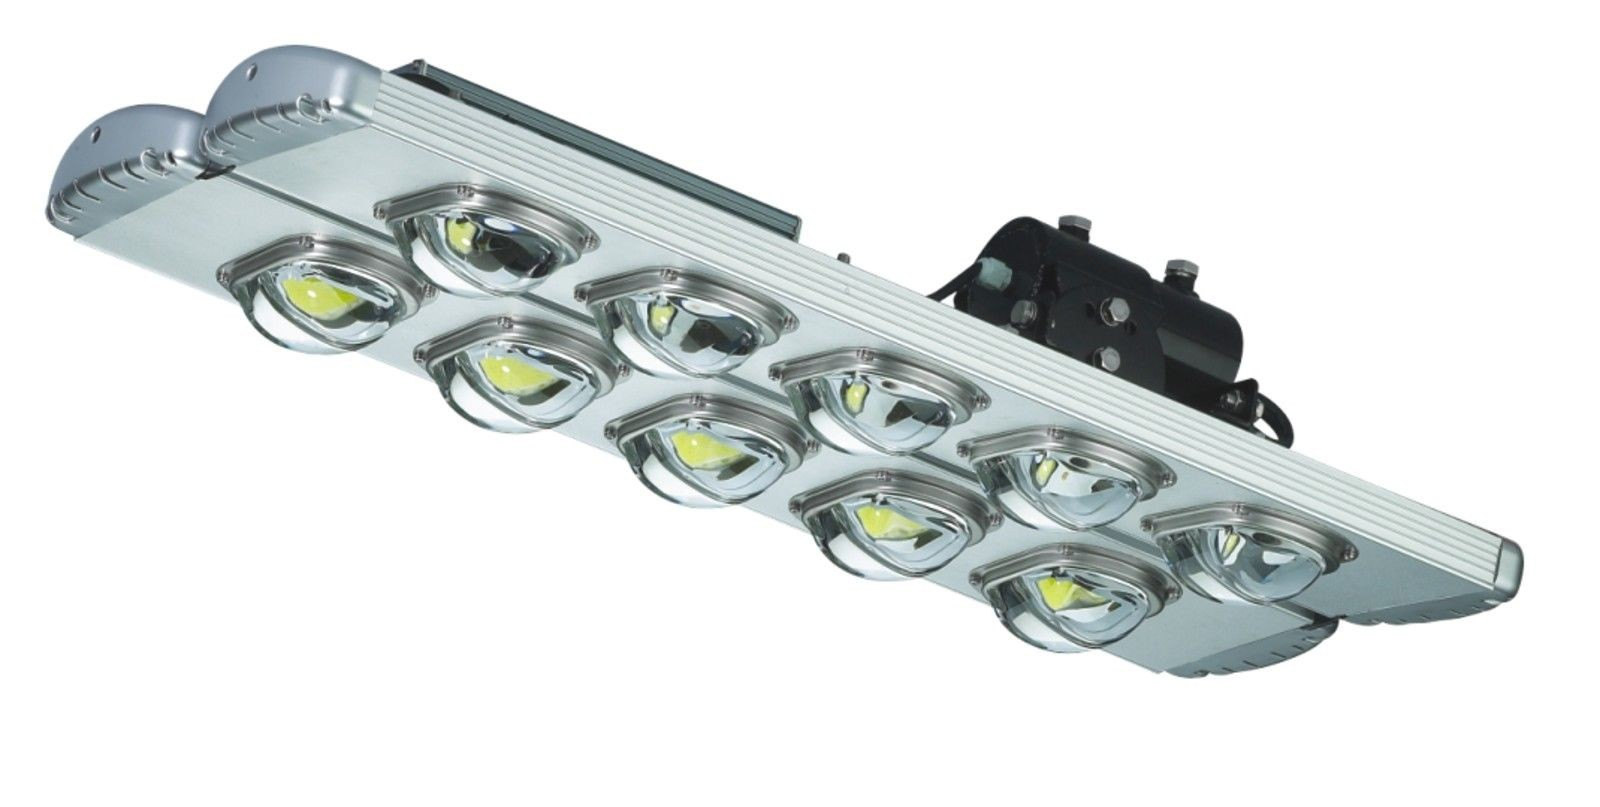 200 Watt LED High Mass Street Light